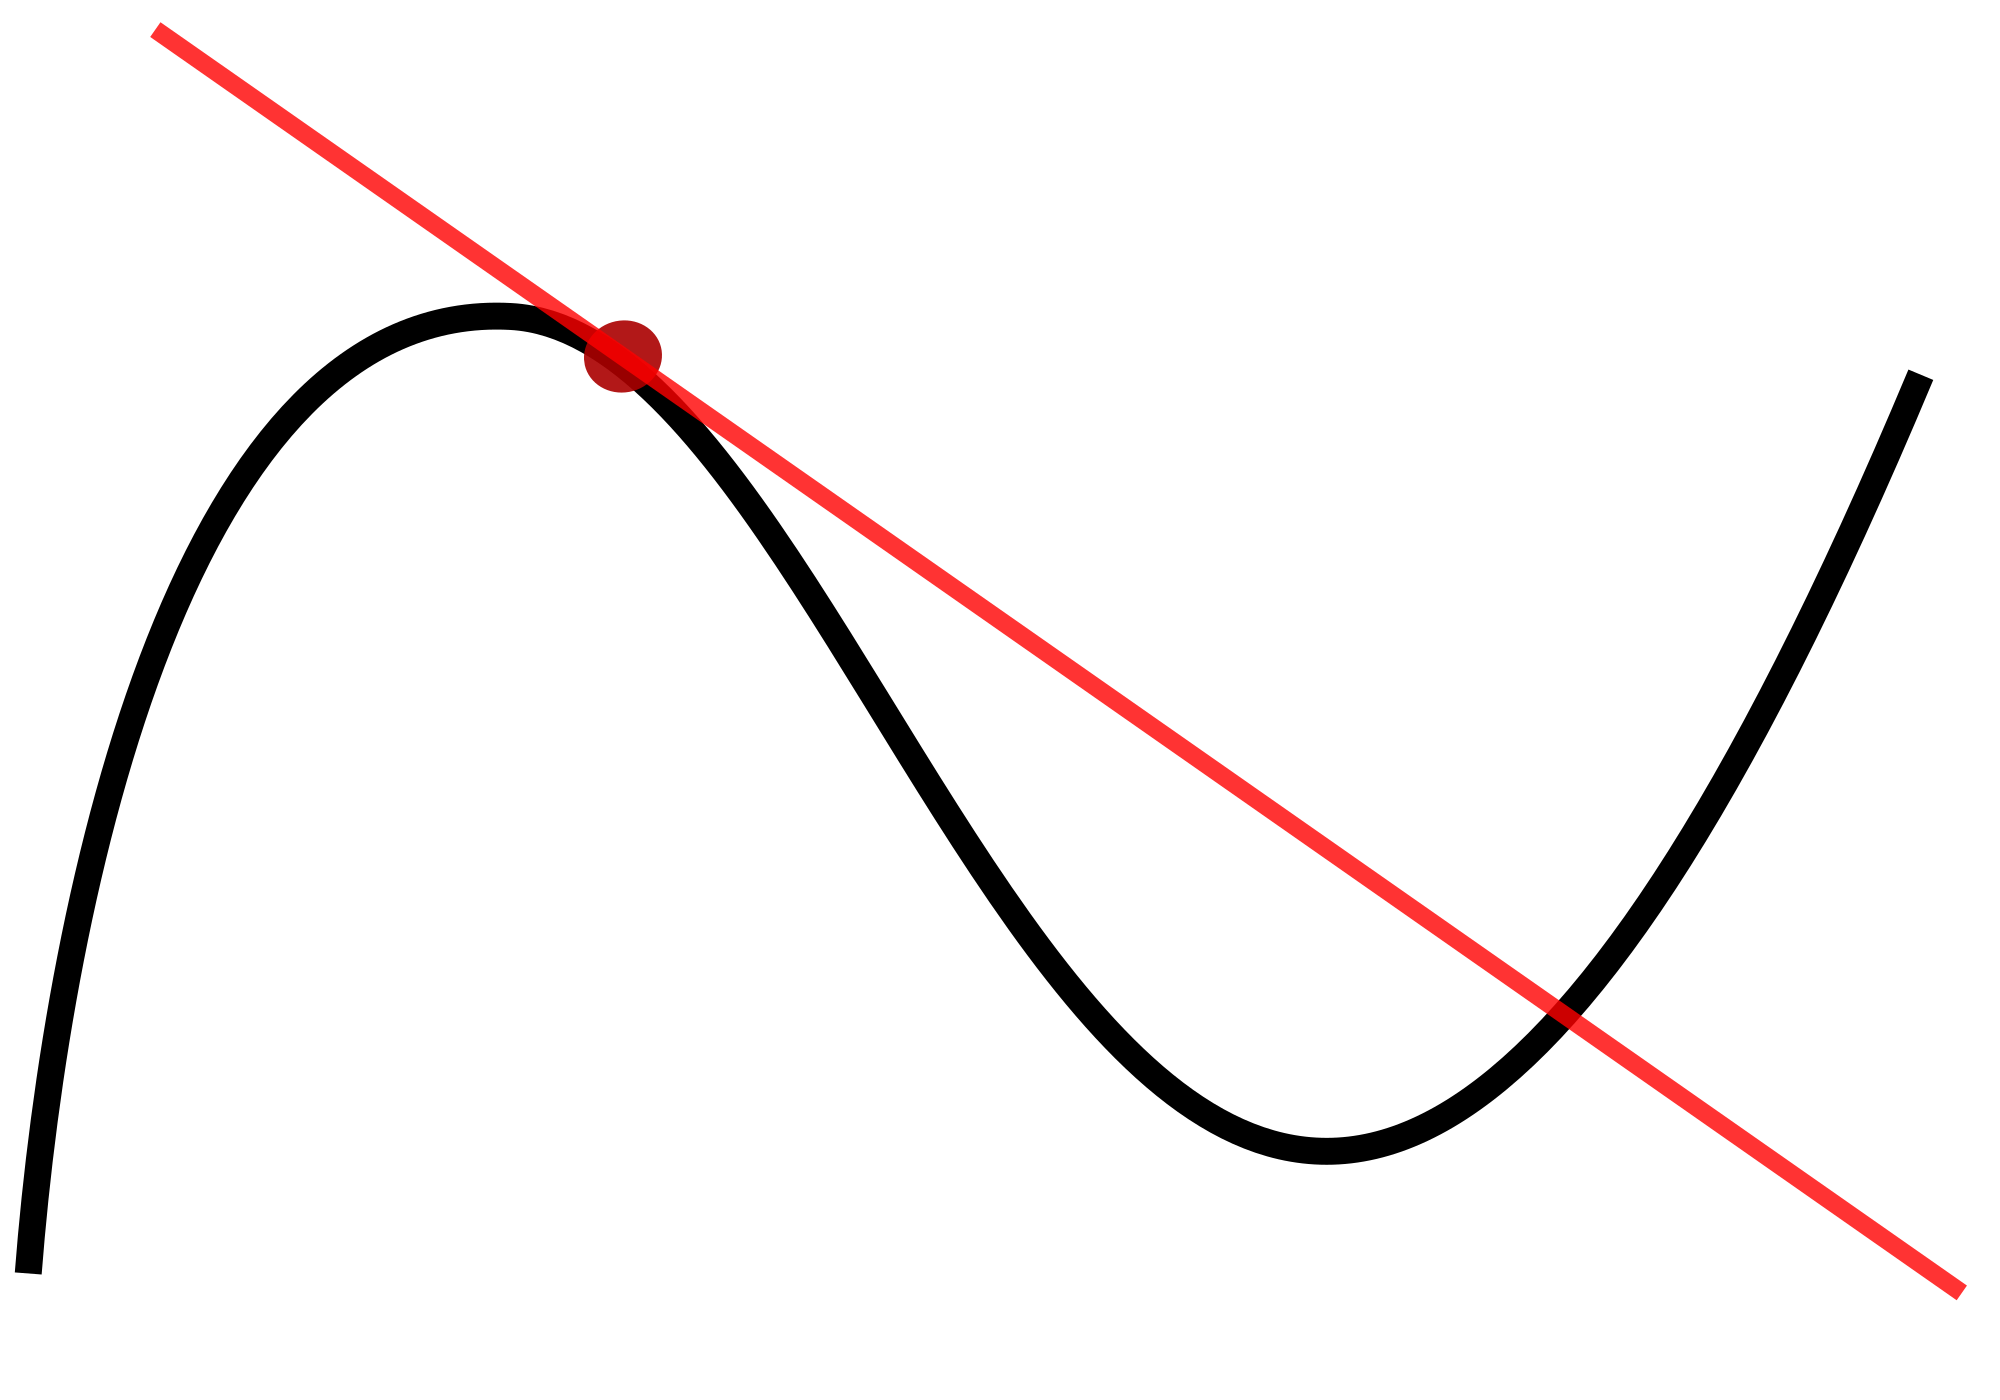 tangent of a curve